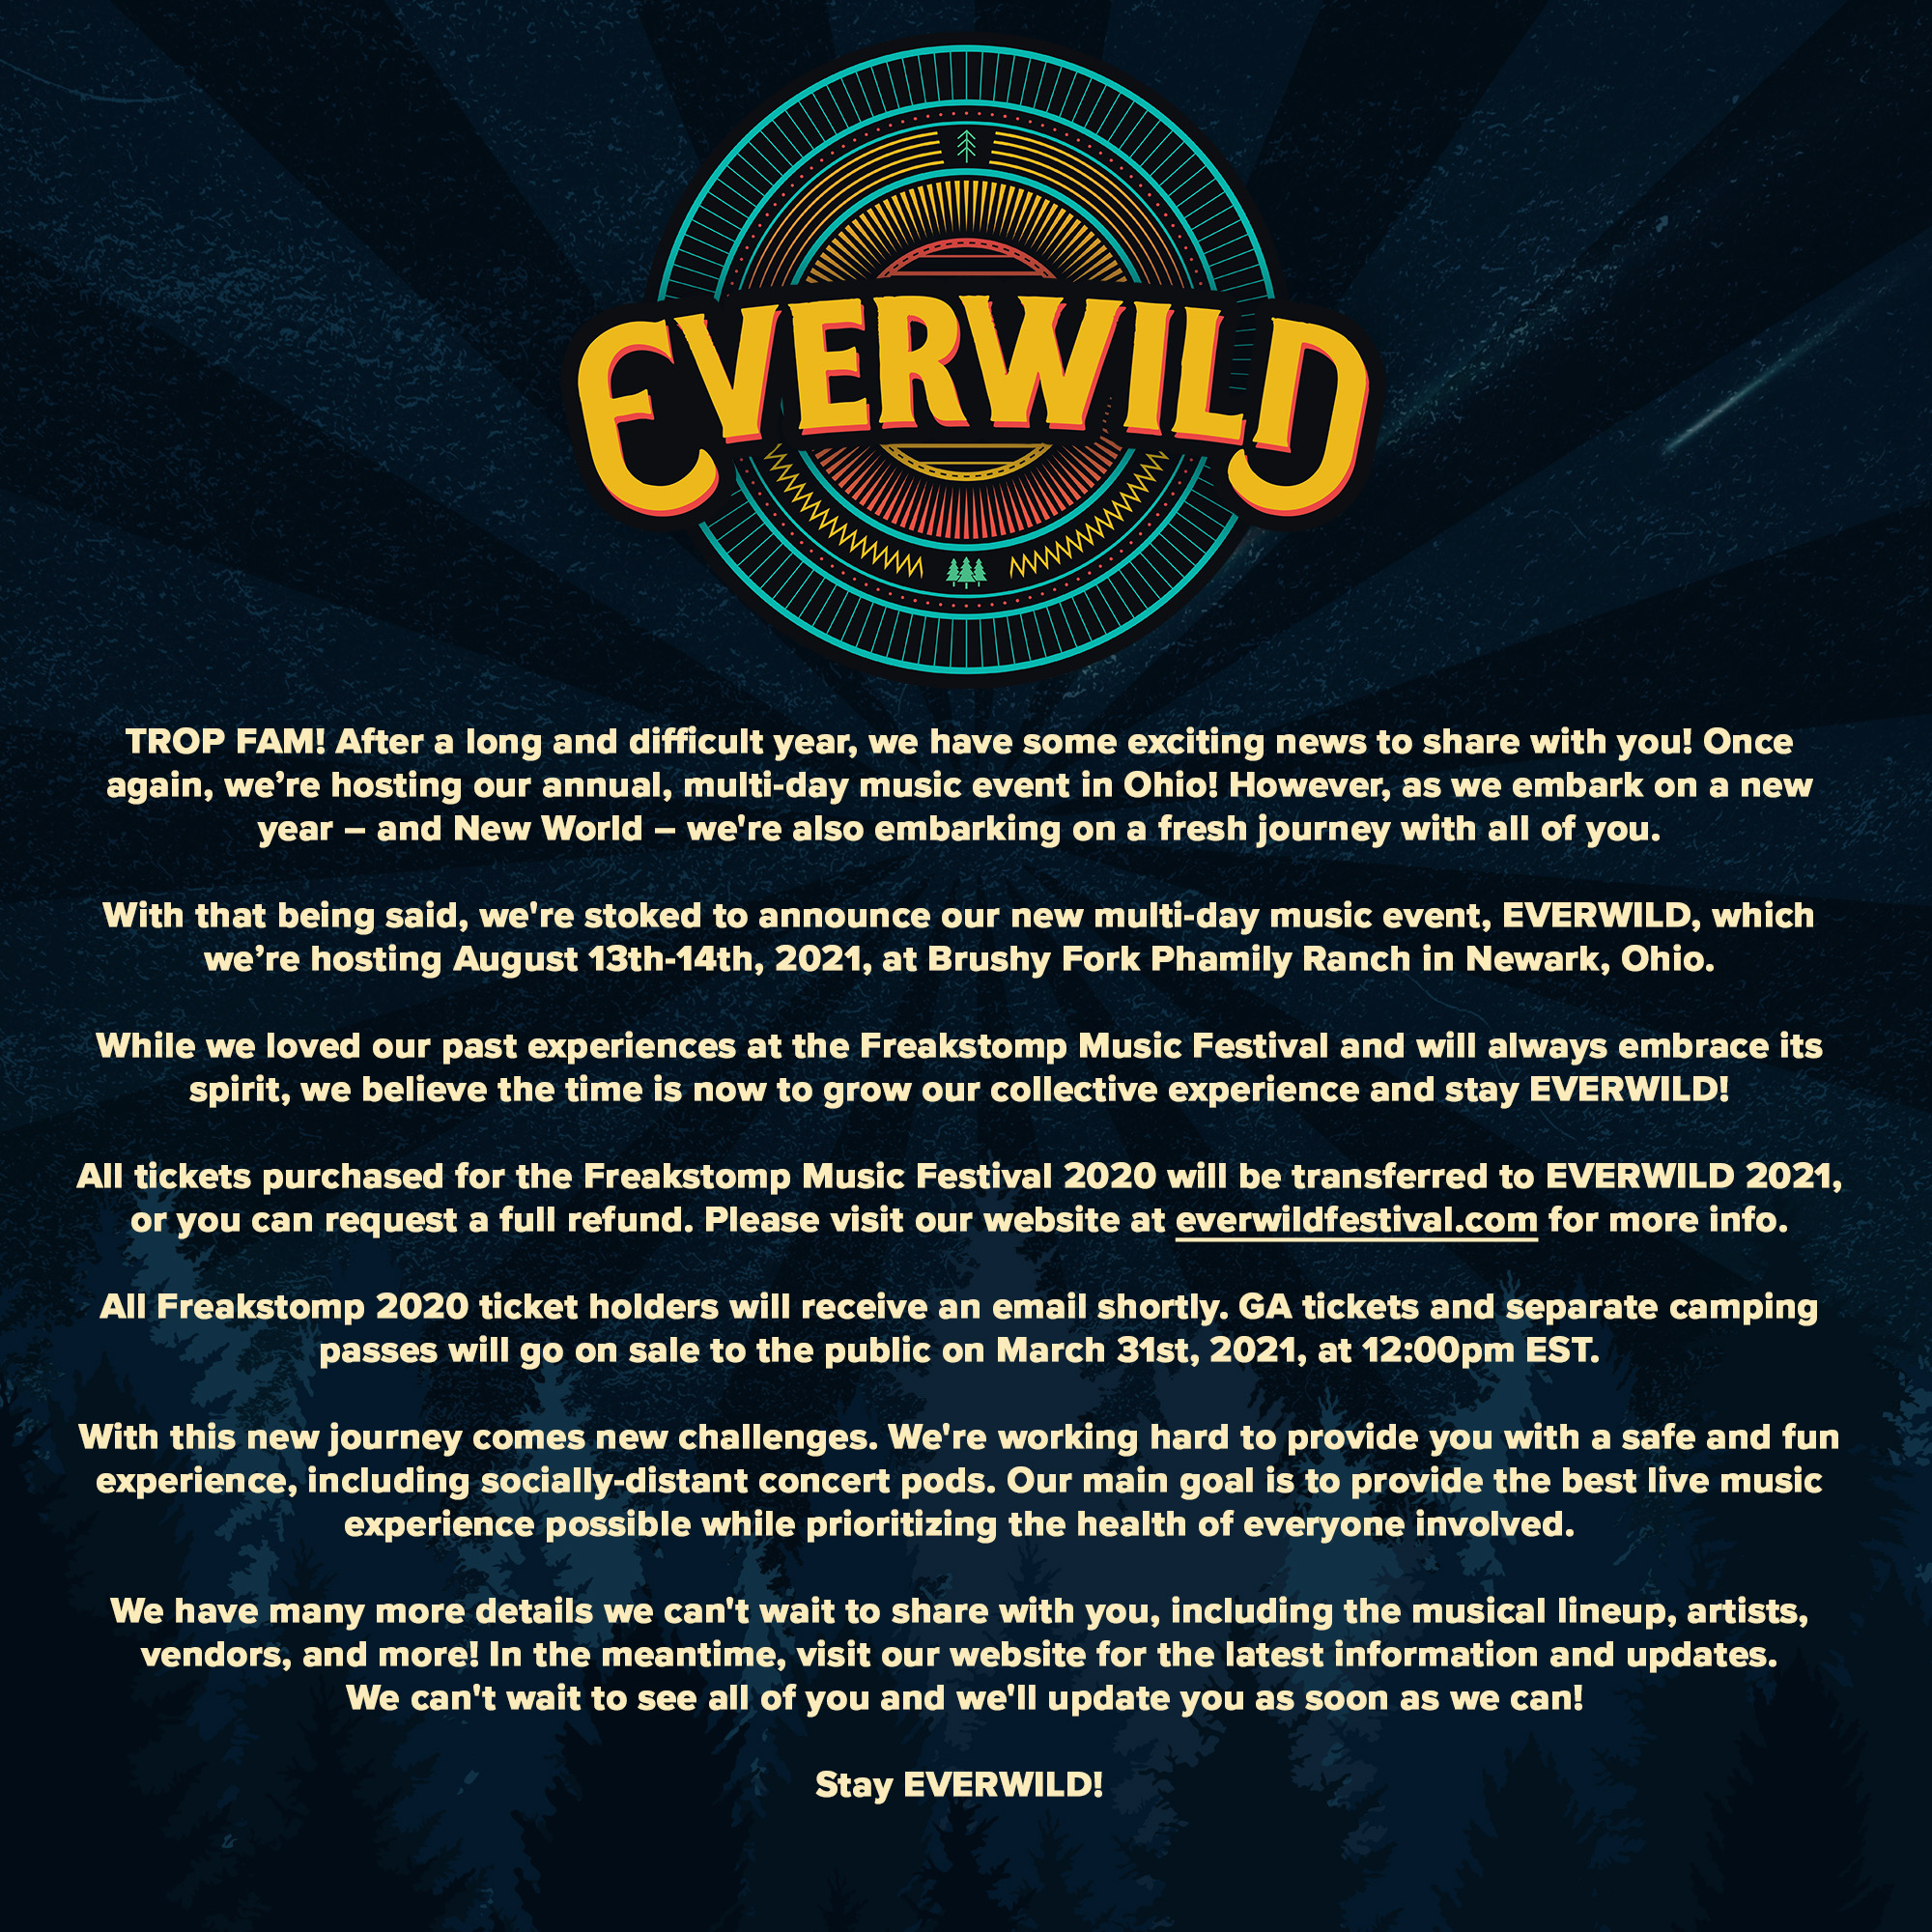 EVERWILD Announcement Image